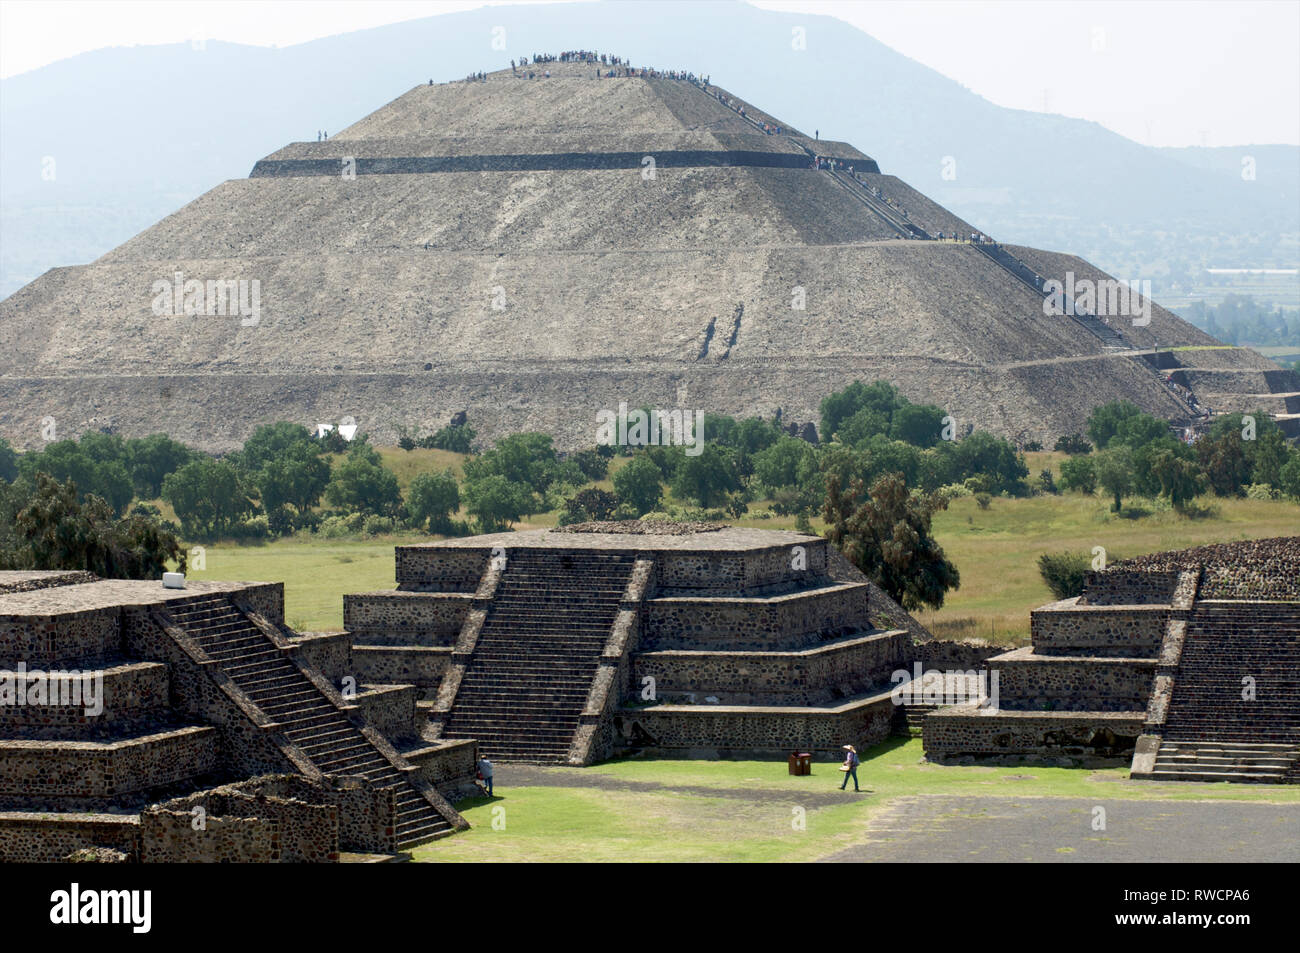 Pyramid of The Sun and the Avenue of the Dead in the distance seen from Pyramid of The Moon at Teotihuacan in the Valley of Mexico in Mexico - Stock Image